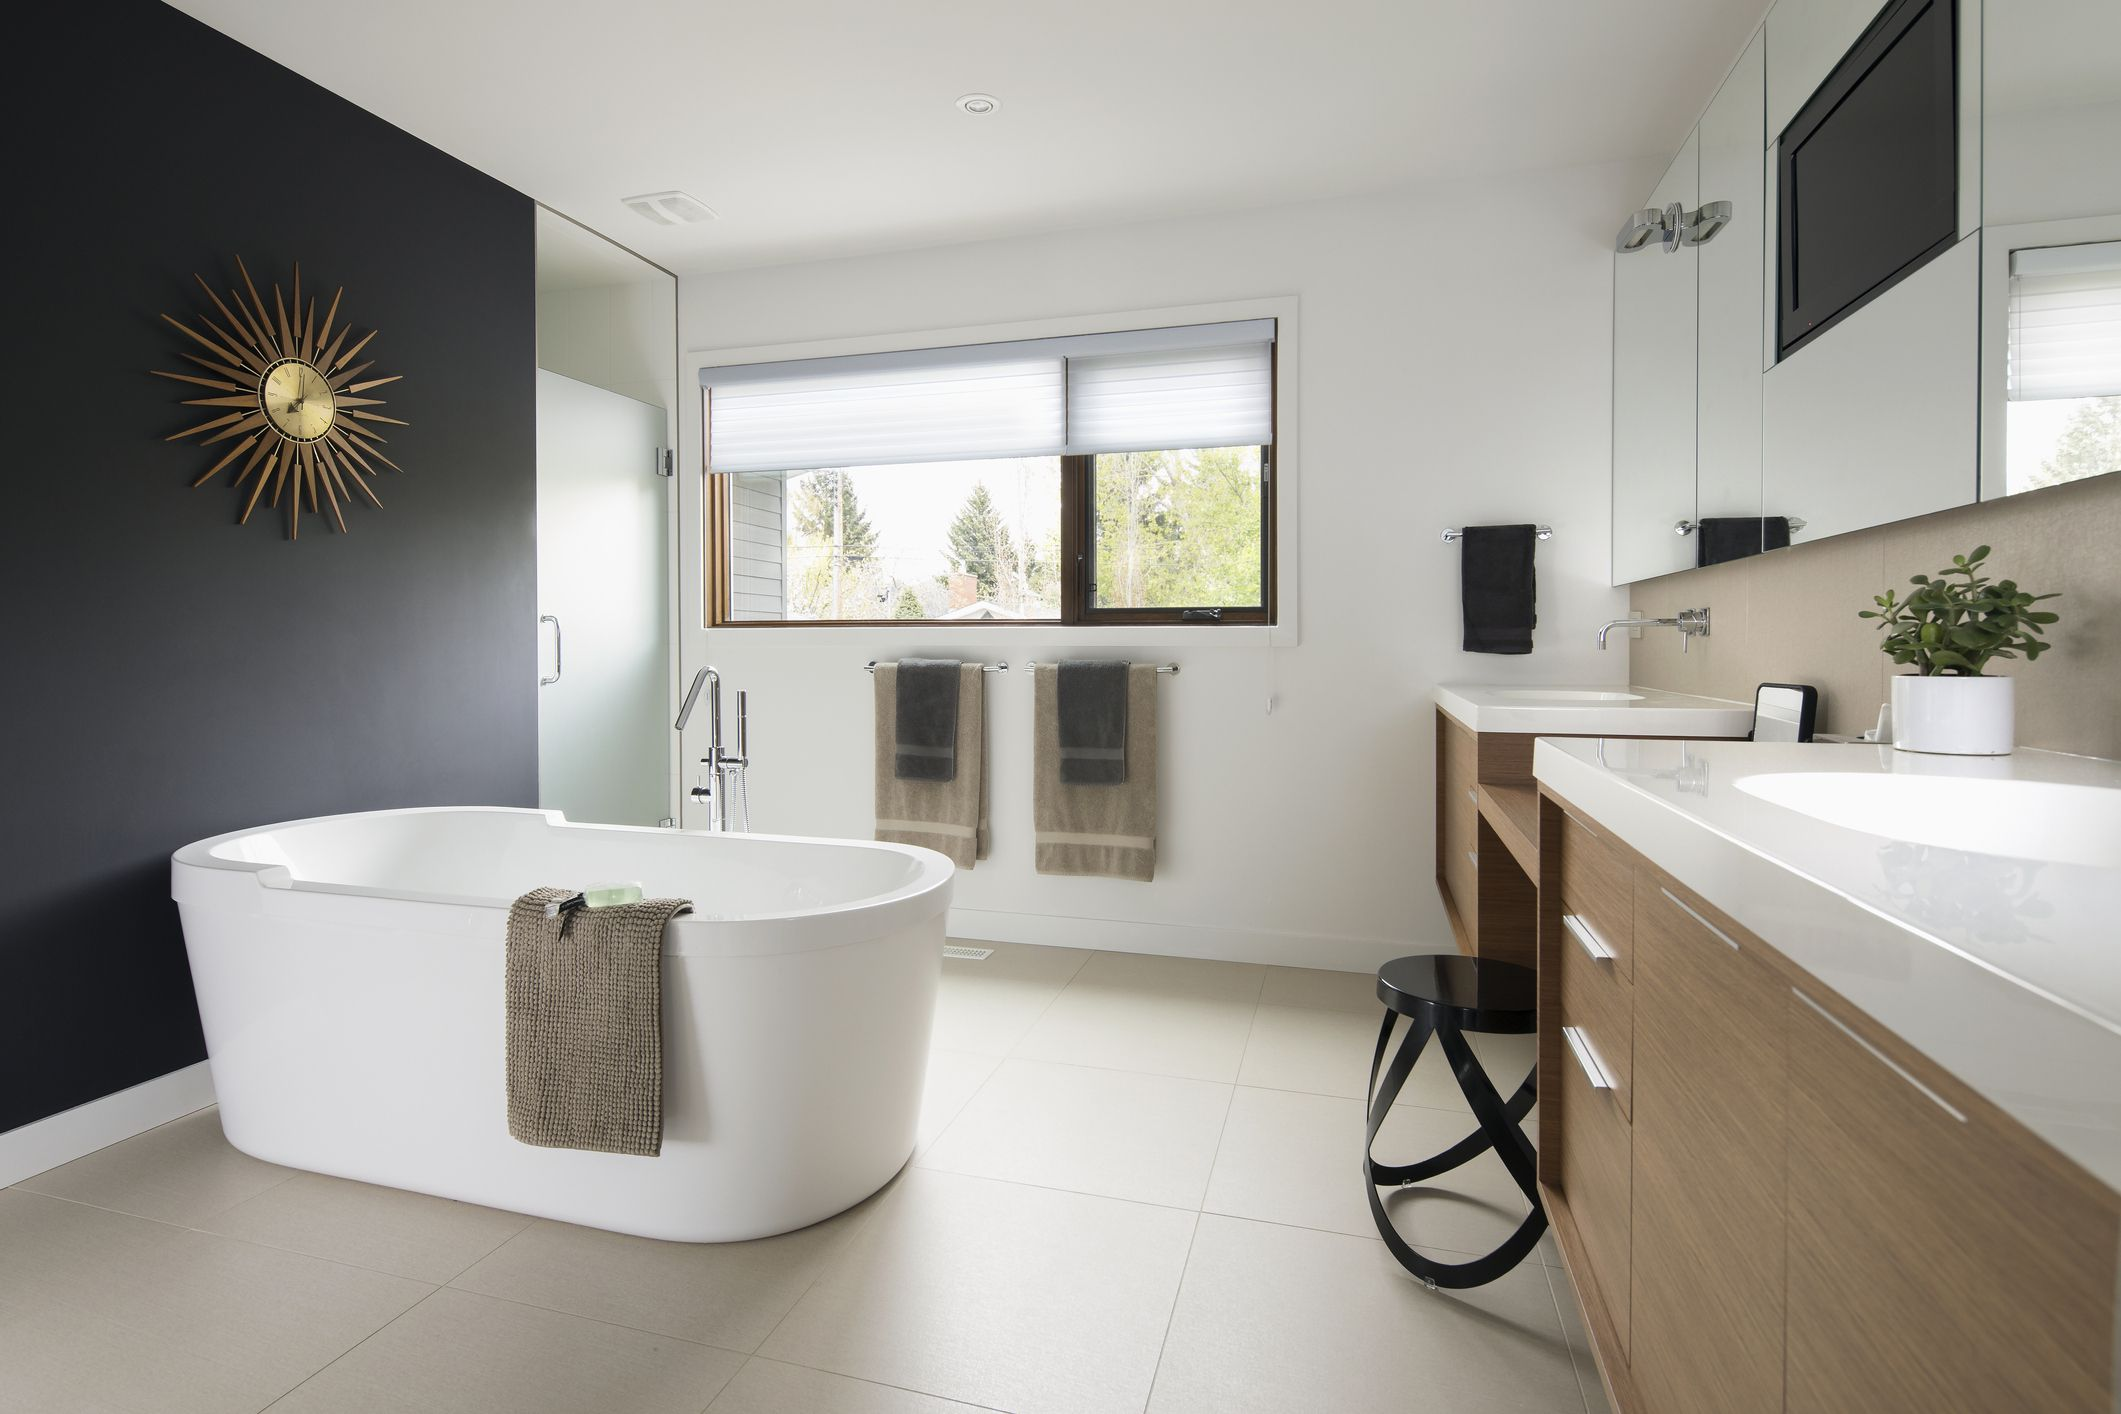 14 ideas for modern style bathrooms - Pictures of bathroom designs ...